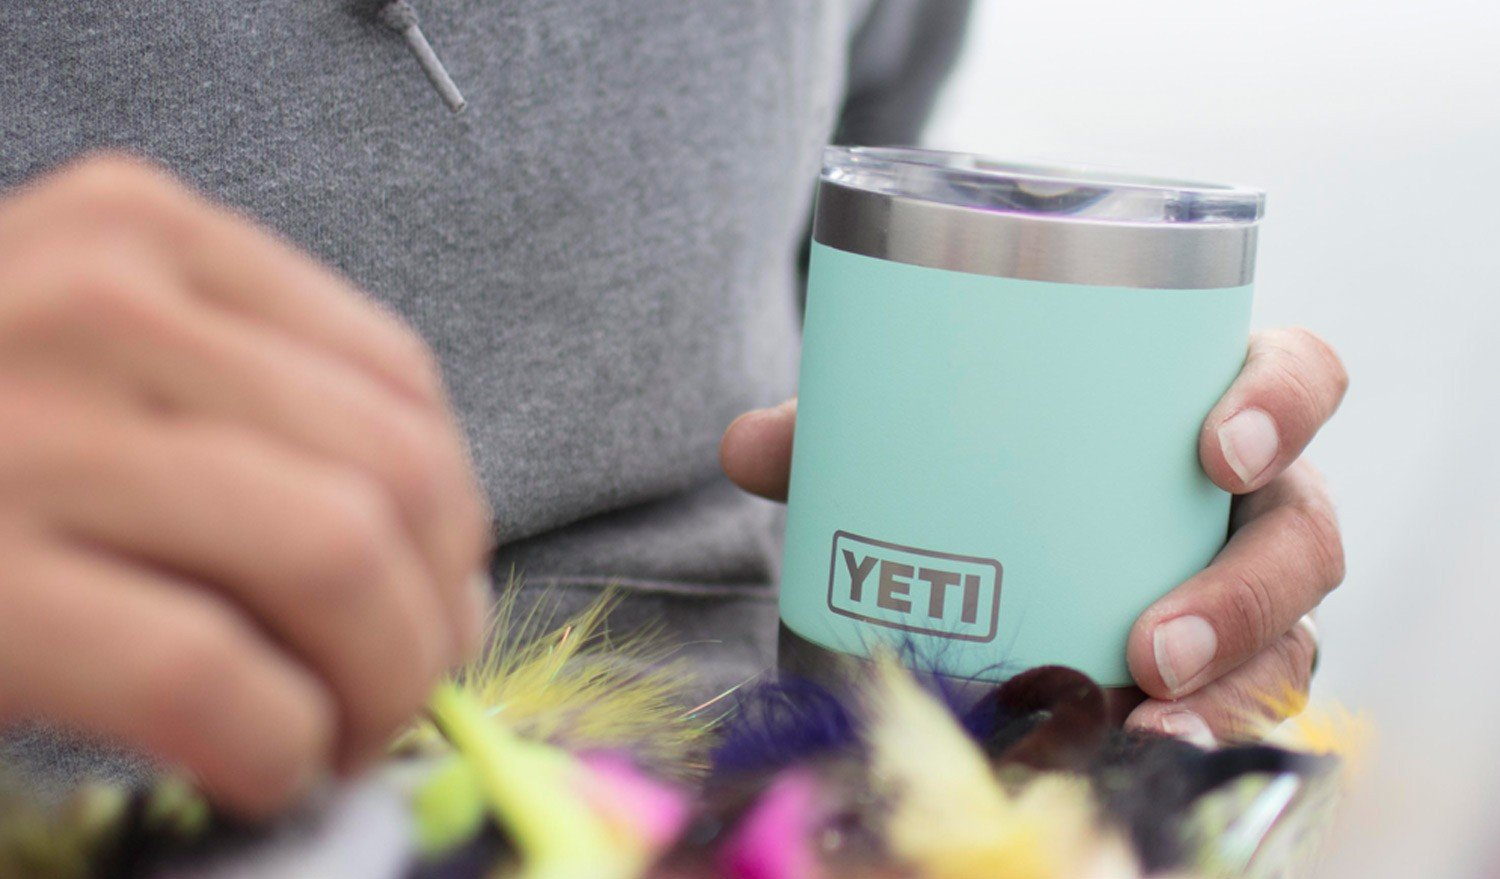 YETI Rambler 10oz Vacuum Insulated Stainless Steel Lowball with Lid, Seafoam DuraCoat by YETI (Image #5)